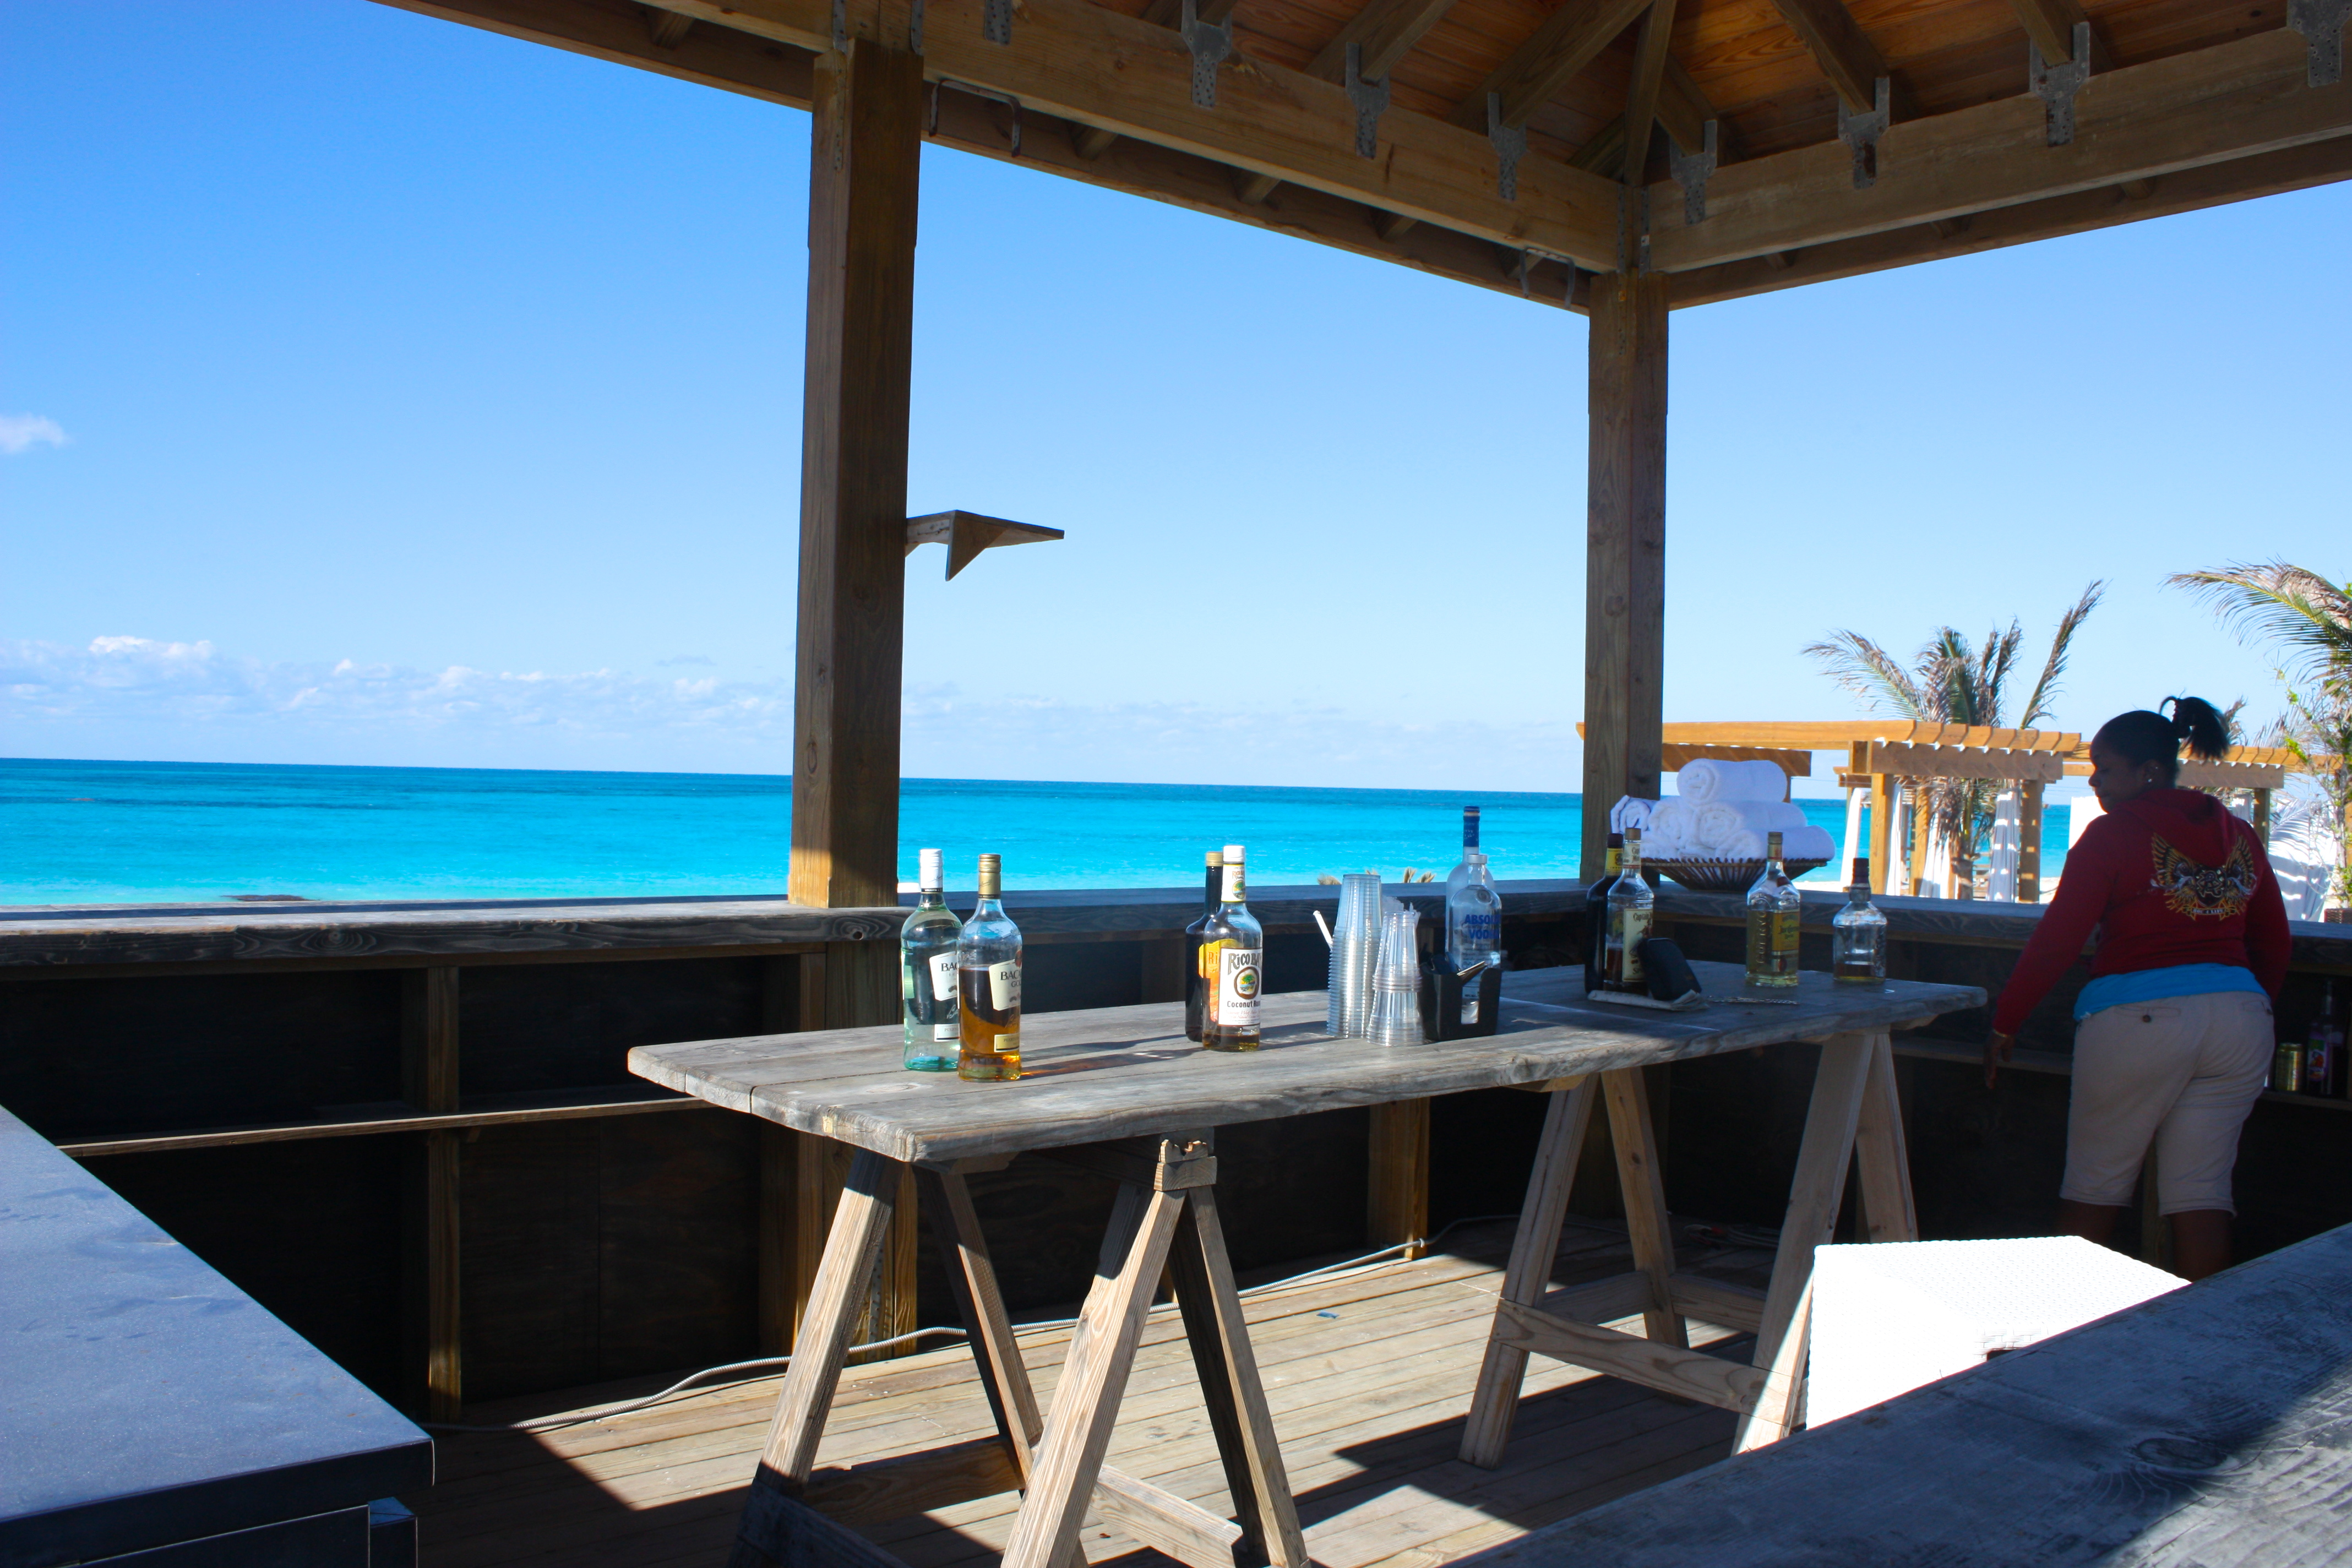 Bimini Beach Bar and More Bahamas Options